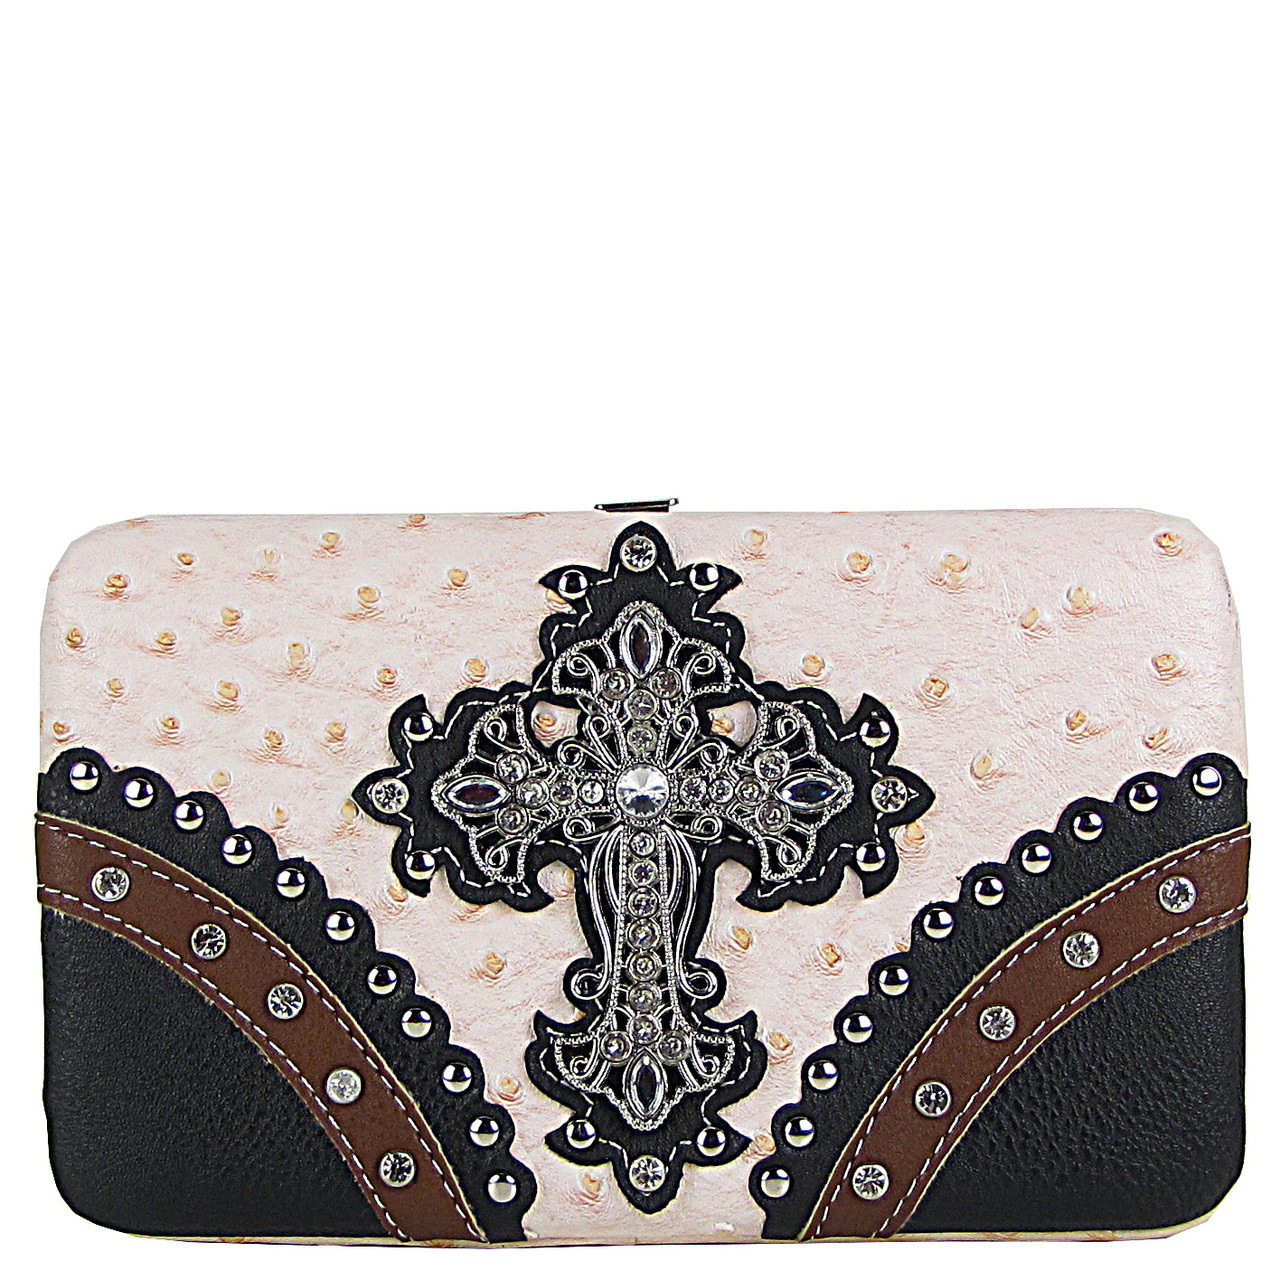 PEACH OSTRICH STUDDED RHINESTONE CROSS FLAT THICK WALLET FW2-04106PCH